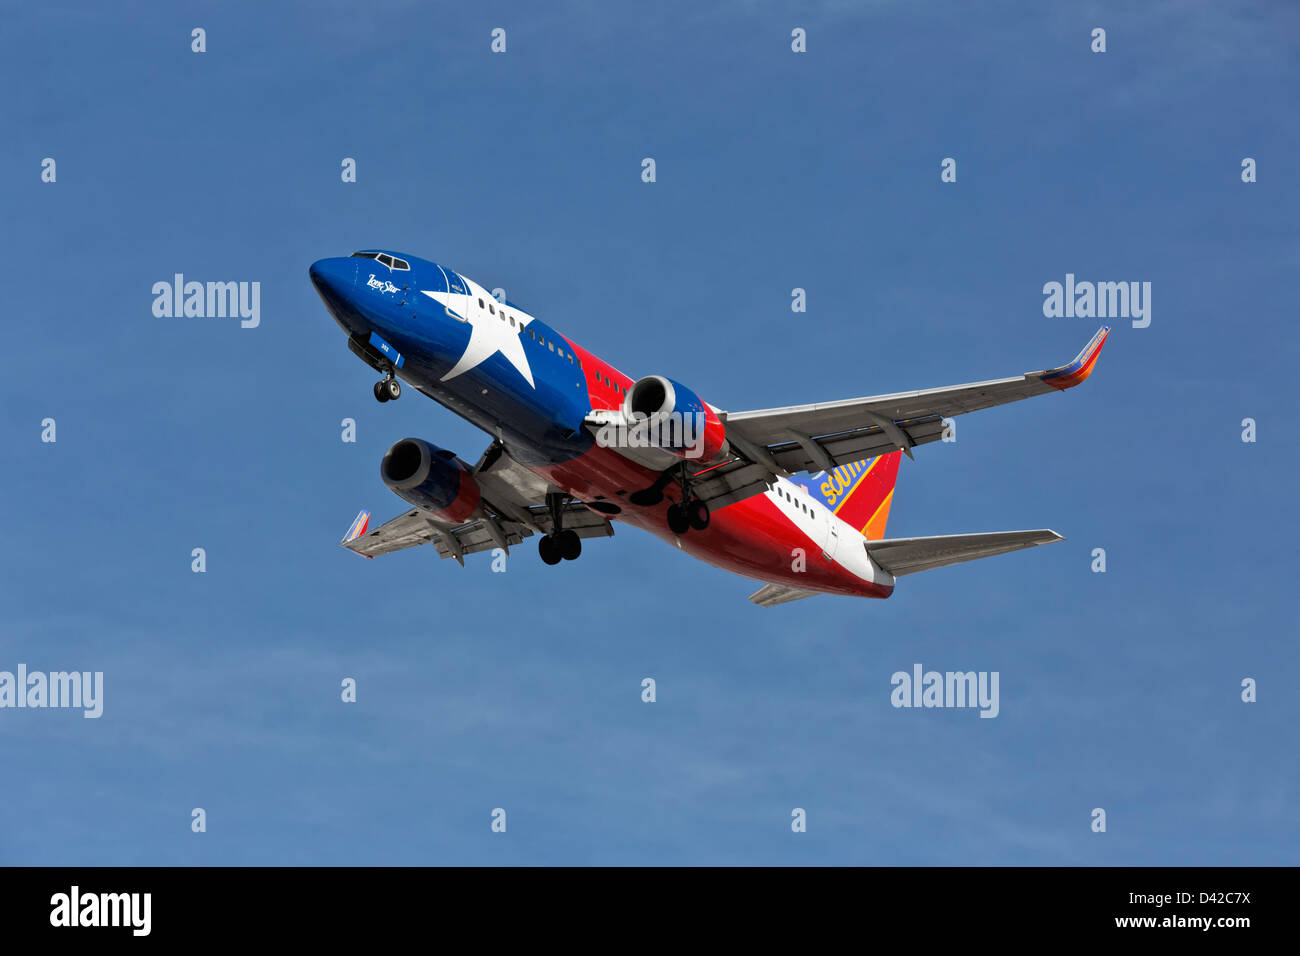 15db4e672521 A Boeing 737 of Southwest airline s on final approach - Special Texas state  paint scheme -